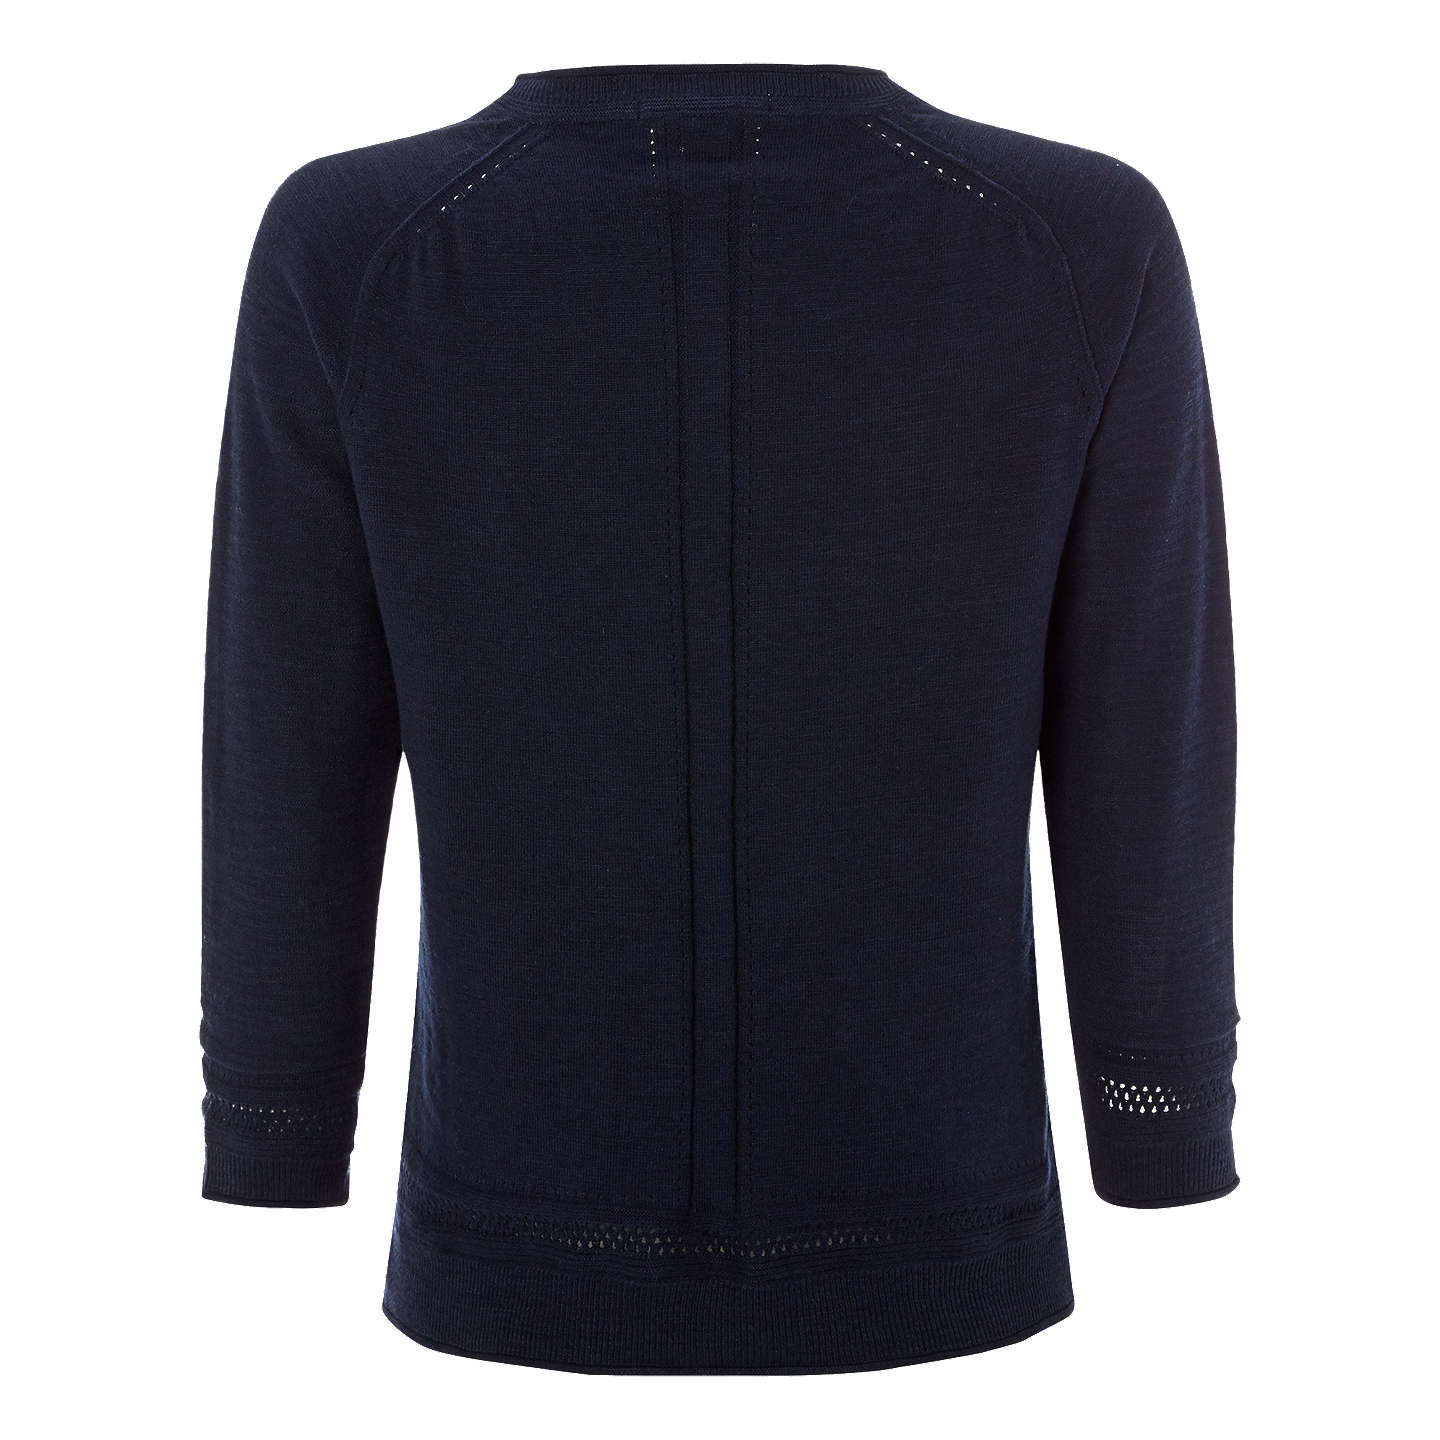 BuyWhite Stuff Palm Cotton Button Cardigan, Navy, 8 Online at johnlewis.com